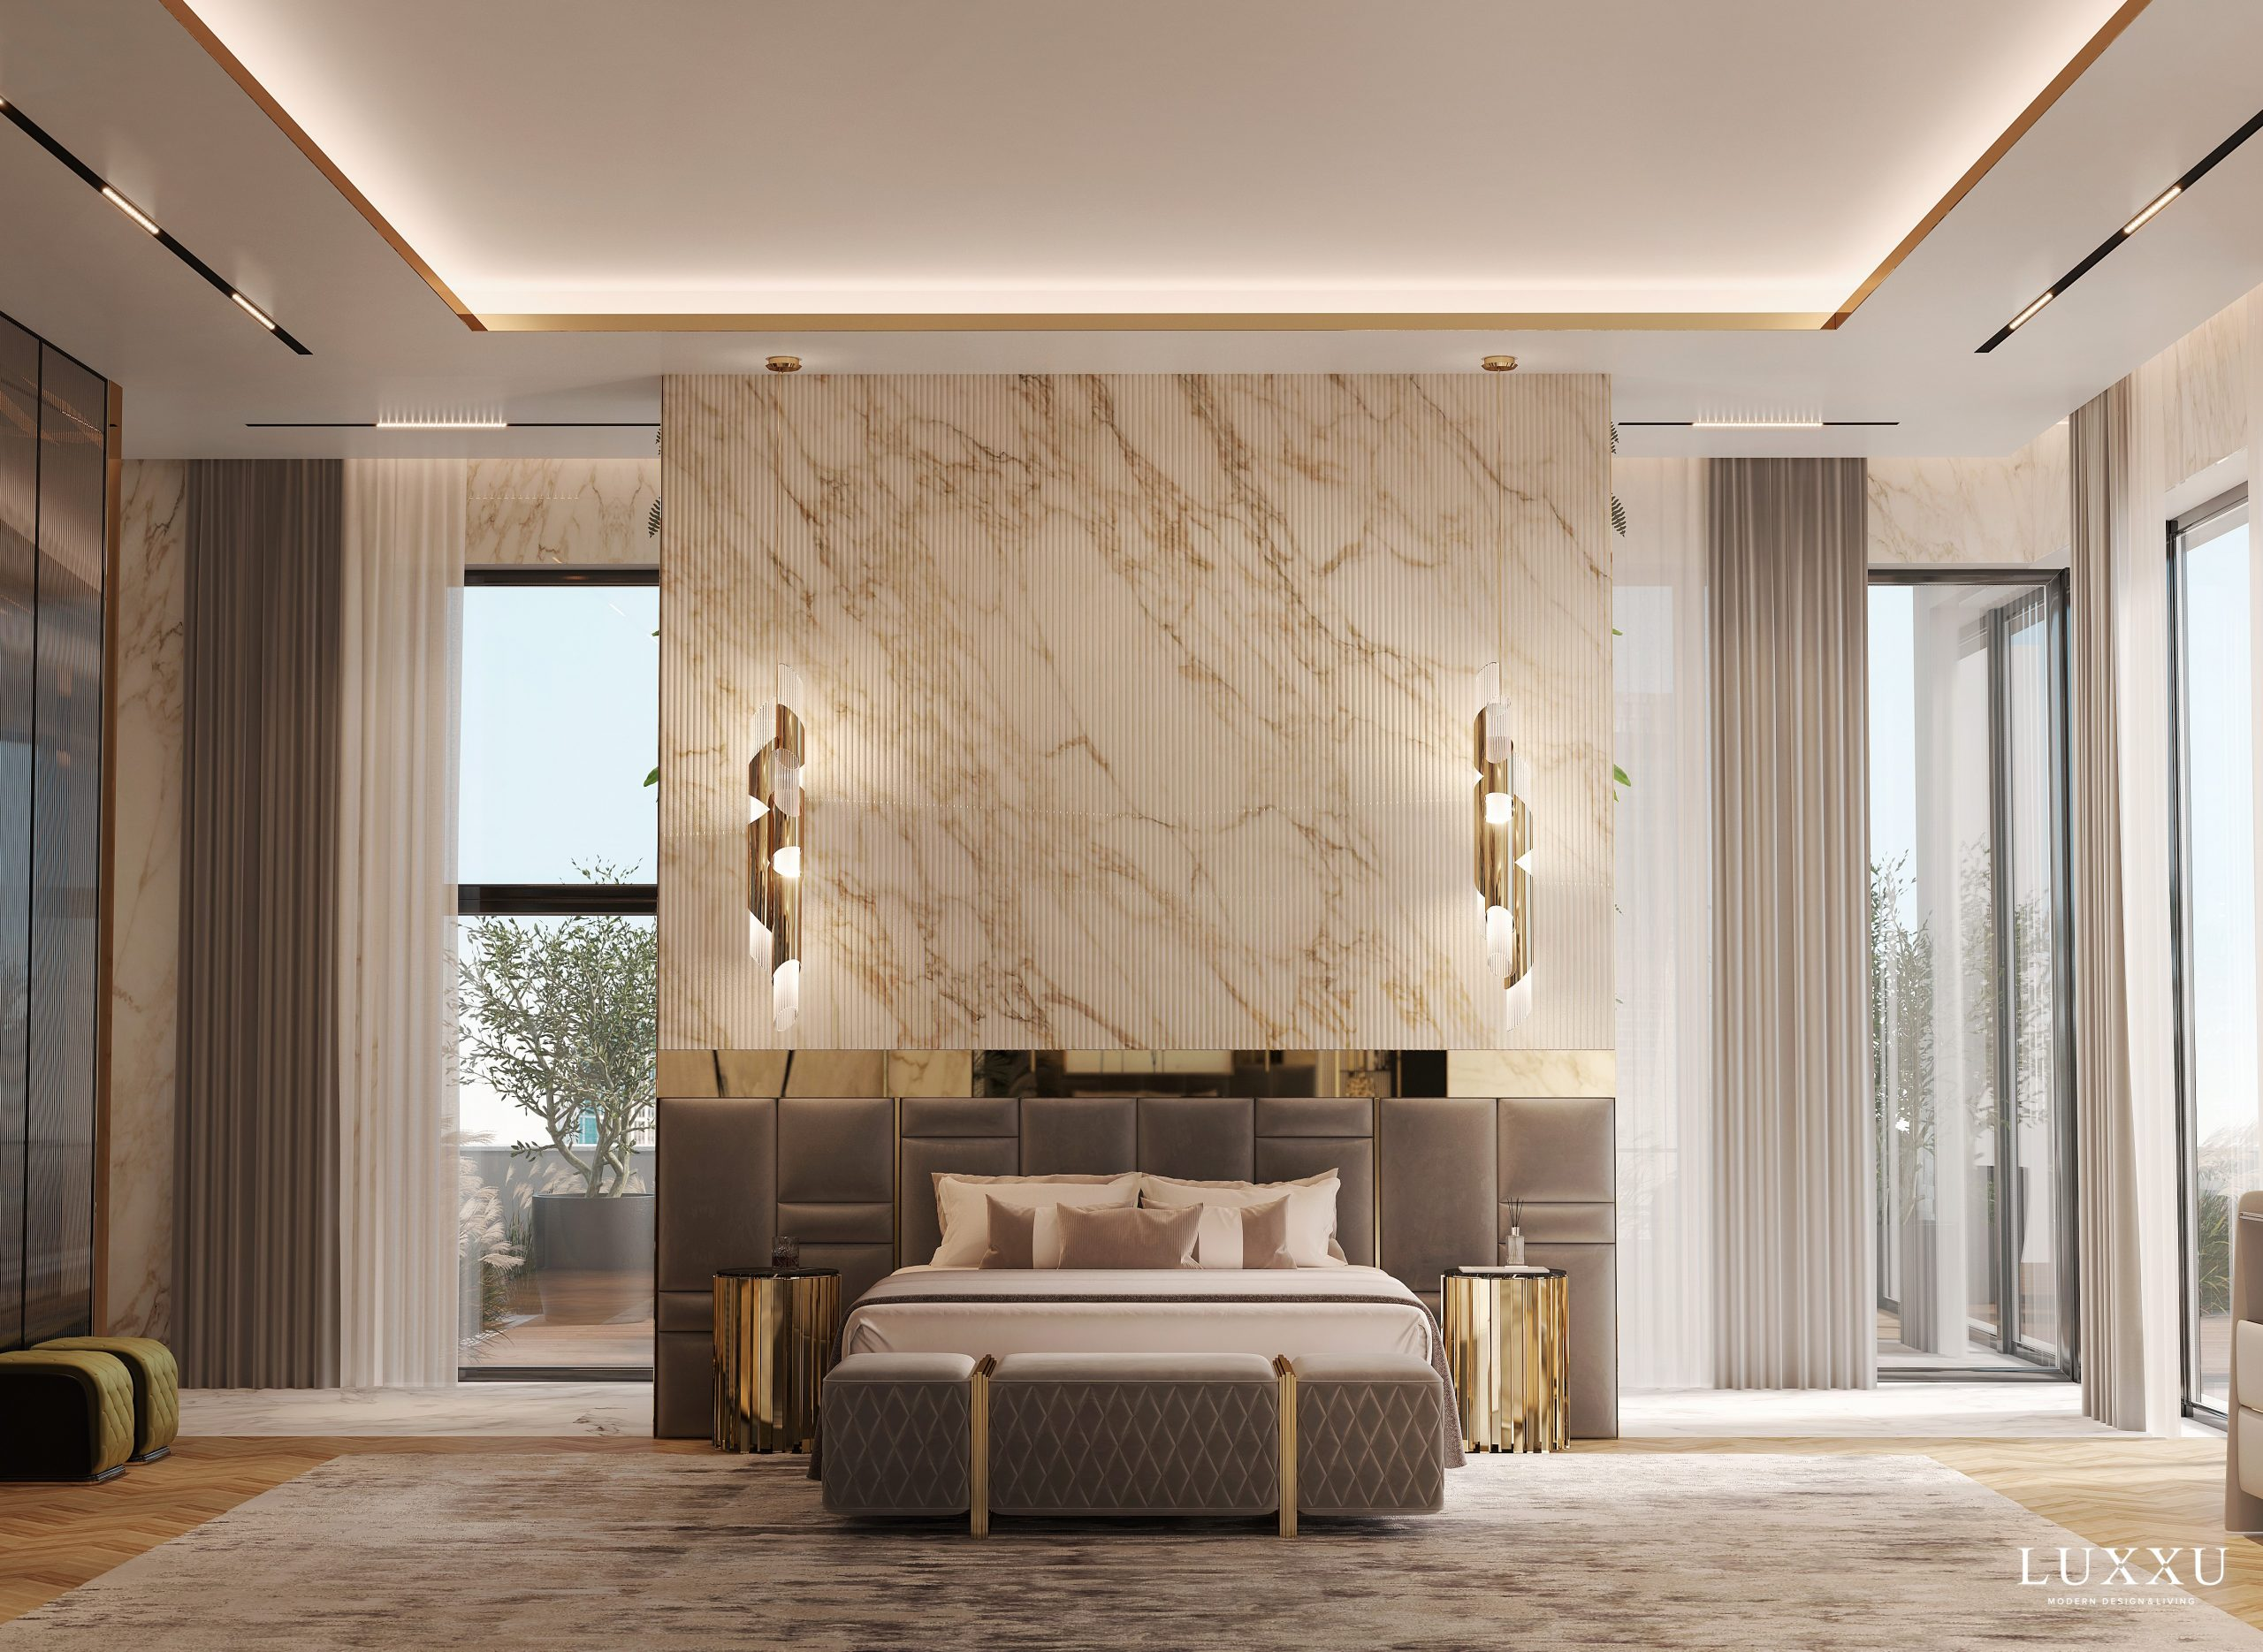 Bedroom Design Inspiration - Get a Modern and Sophisticated Look! home inspiration ideas